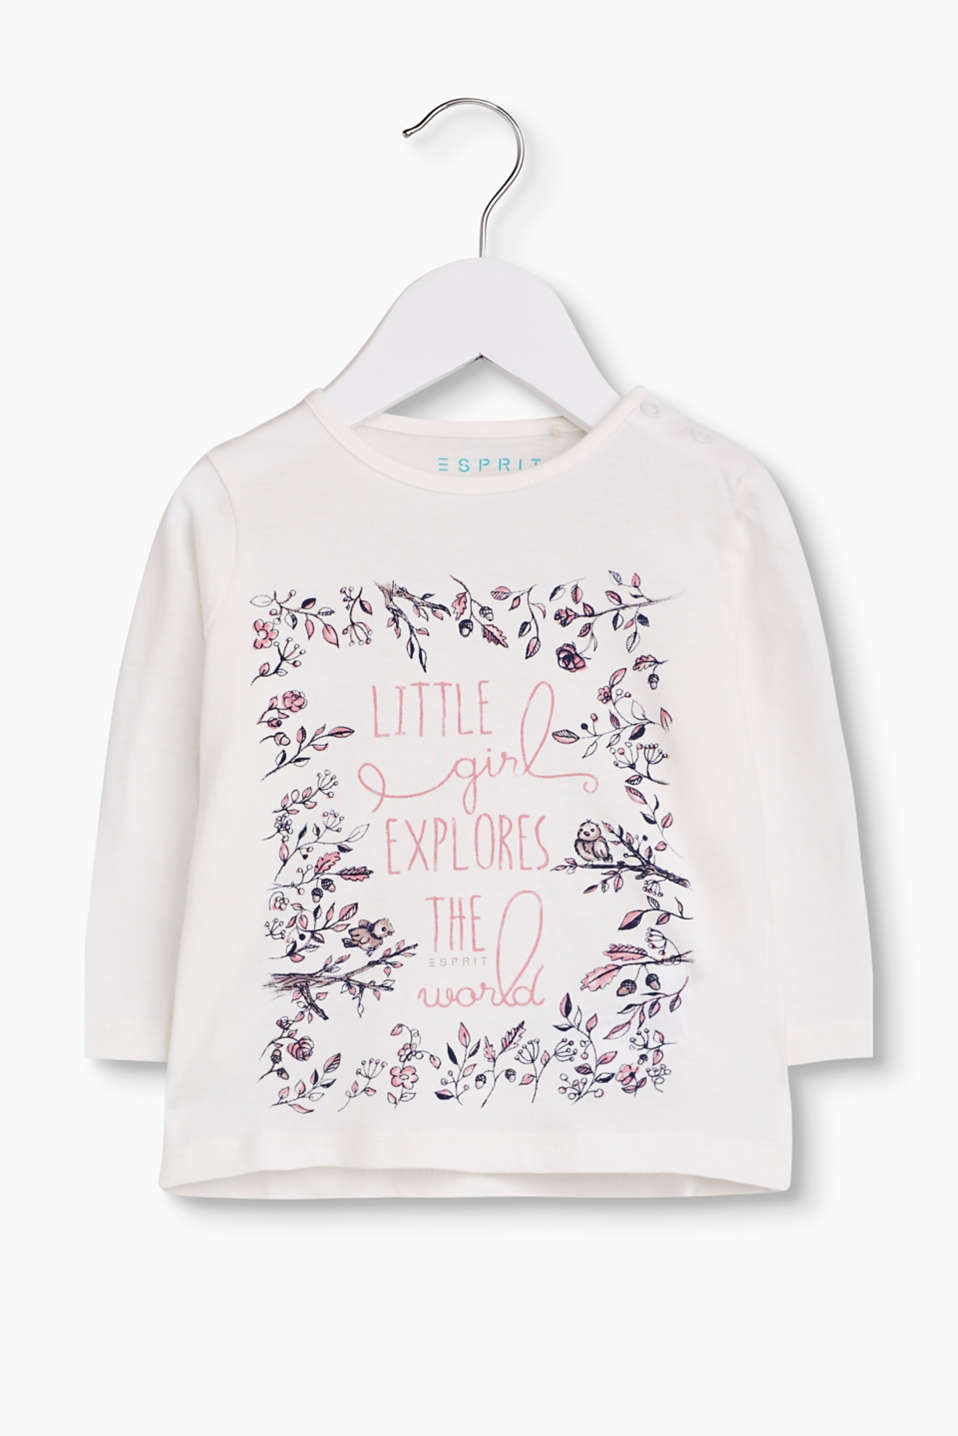 For Girl´s only: Softes Baumwoll-Longleeve mit floral verziertem Slogan-Print.